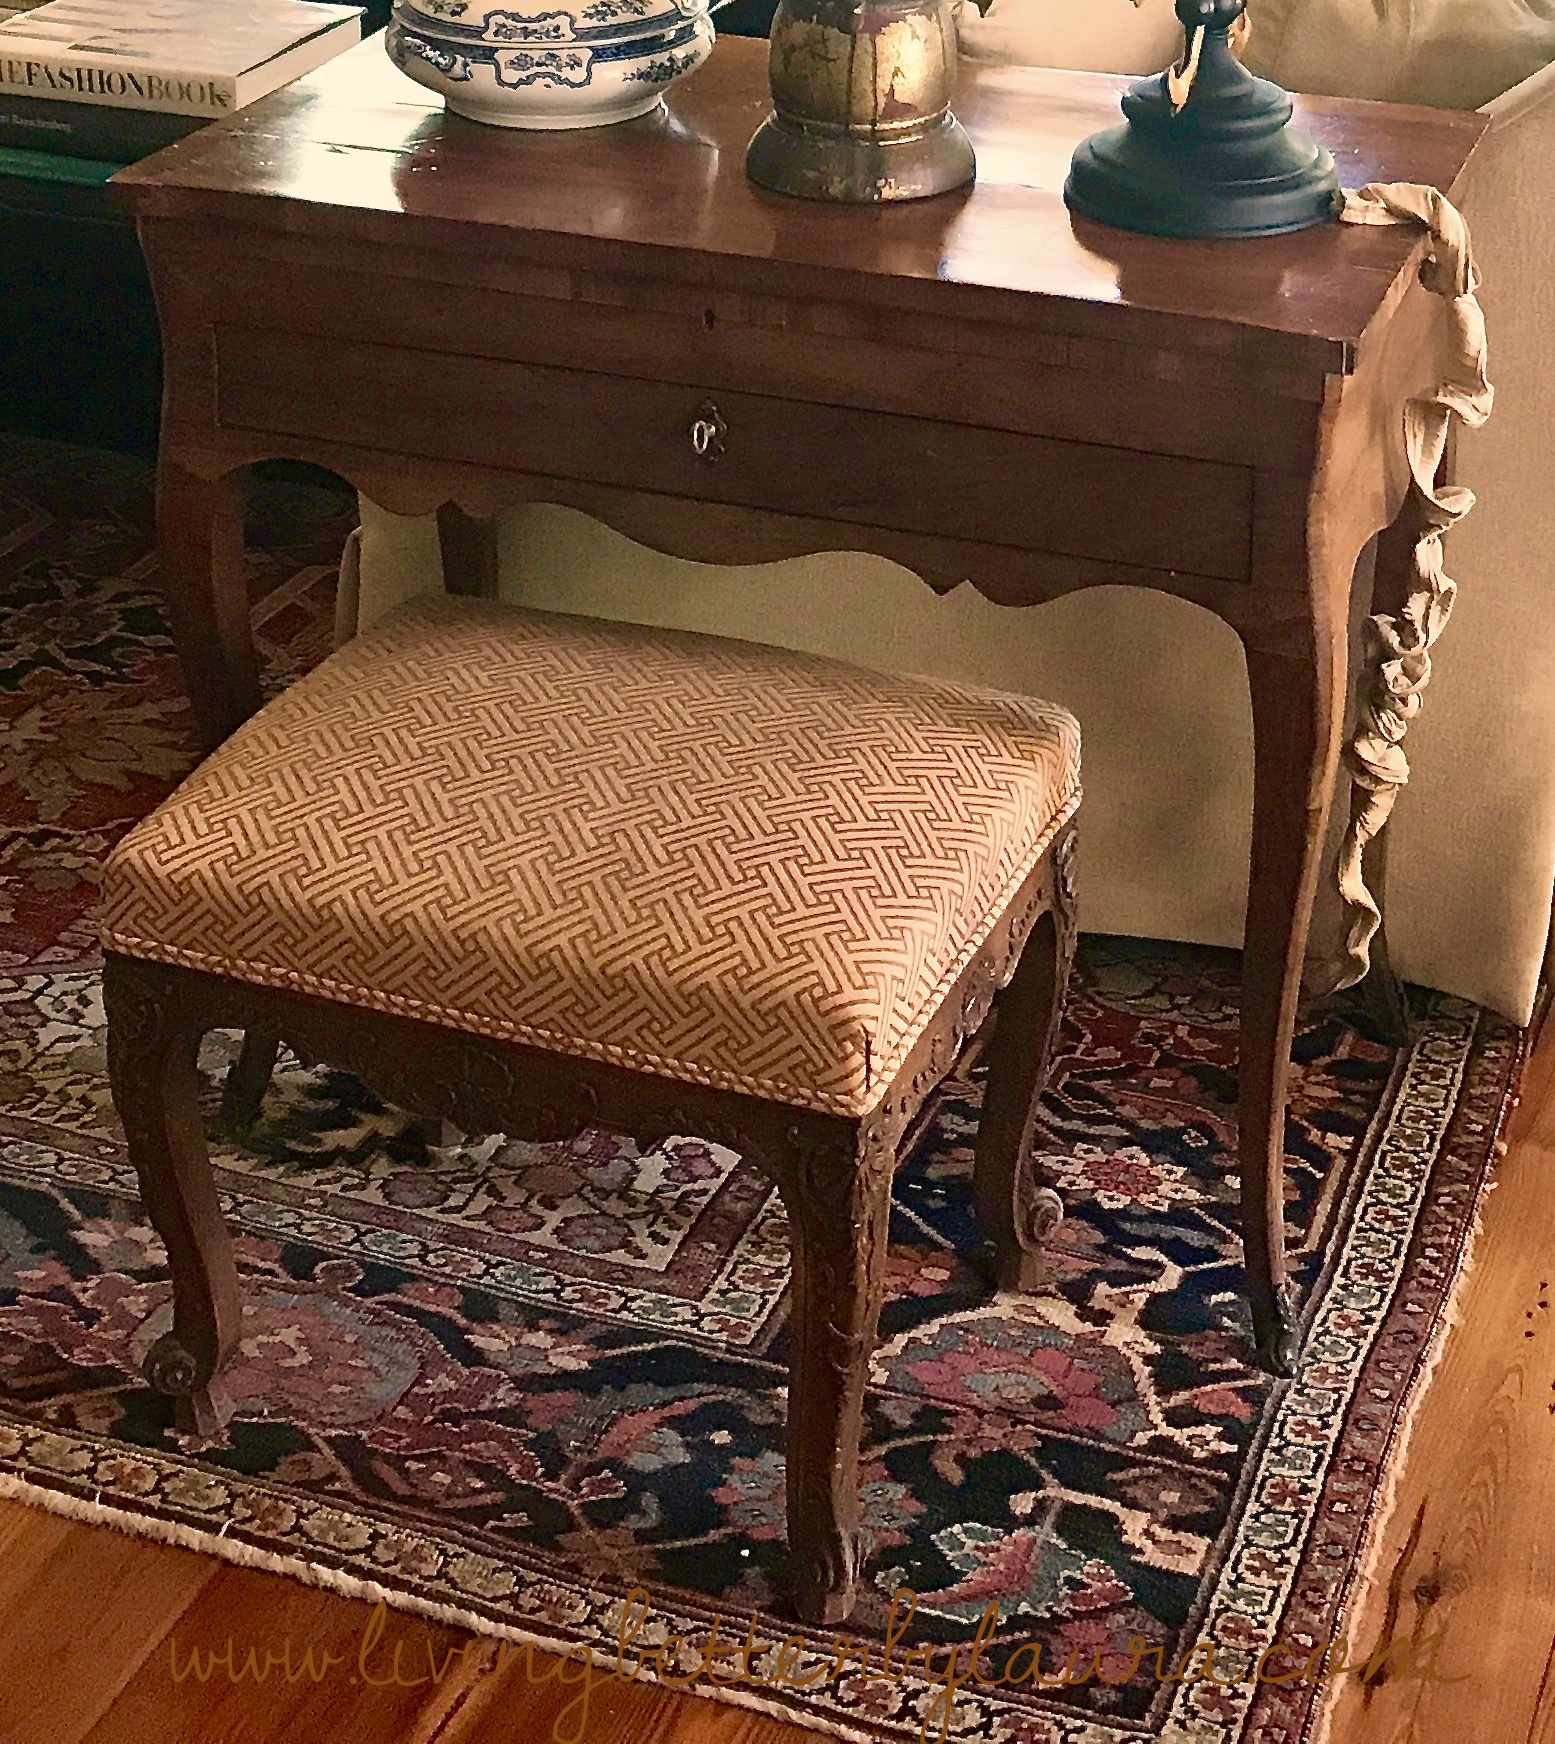 Antiques come in all shapes and sizes. Antiques shown here: Persian rug, stool recovered with new fabric, makeup vanity with mirror inside lid, and blue and white porcelain